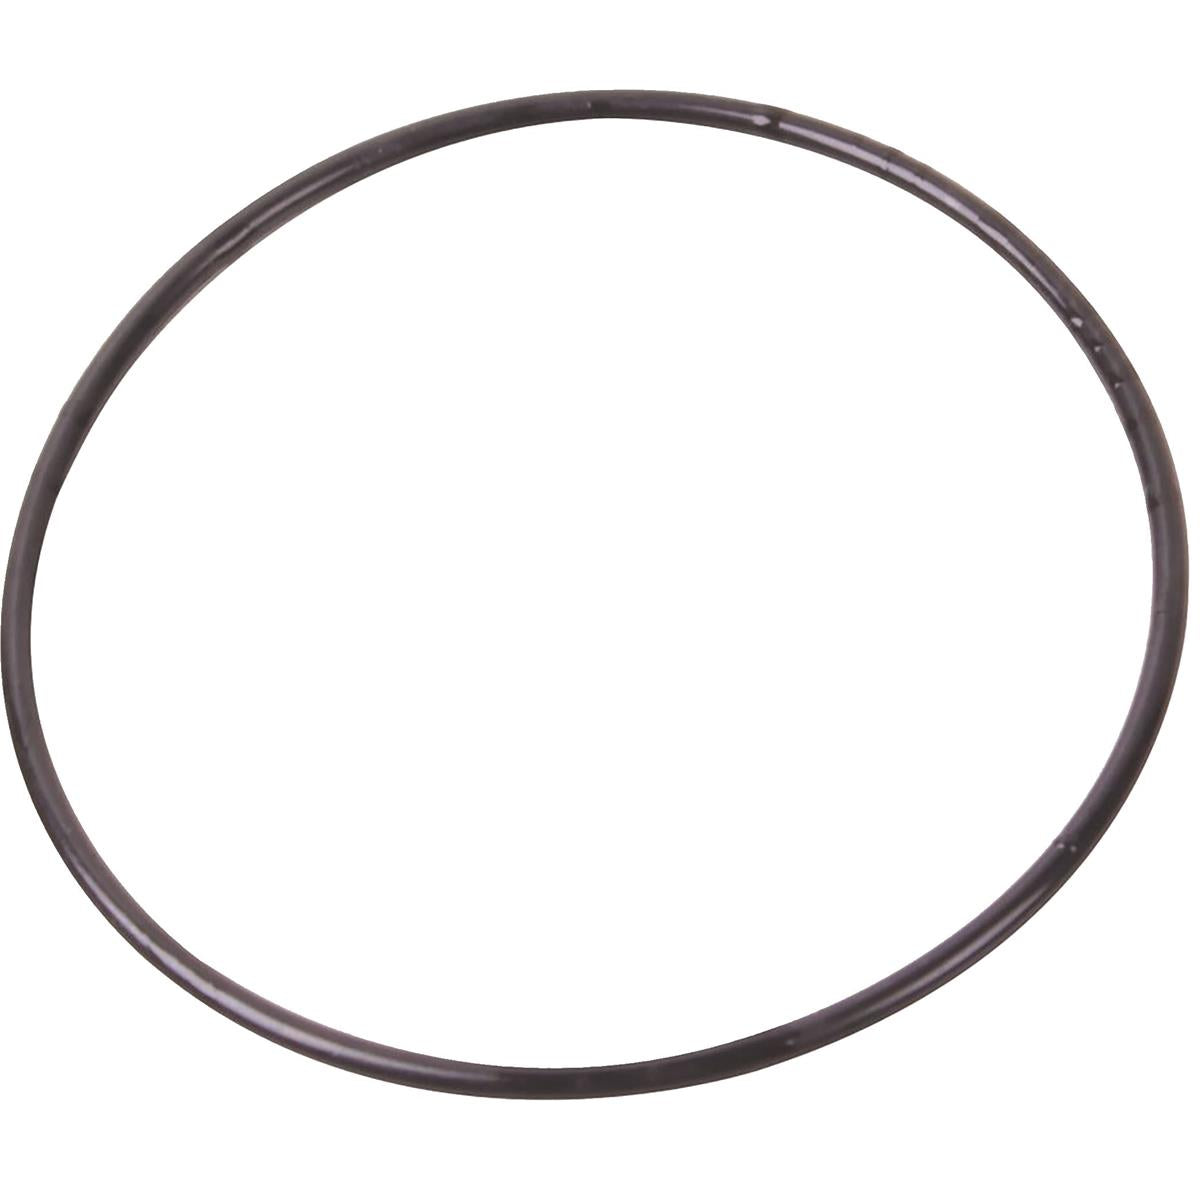 Jacto® Sprayer Replacement CD400 Chamber Cover O-ring